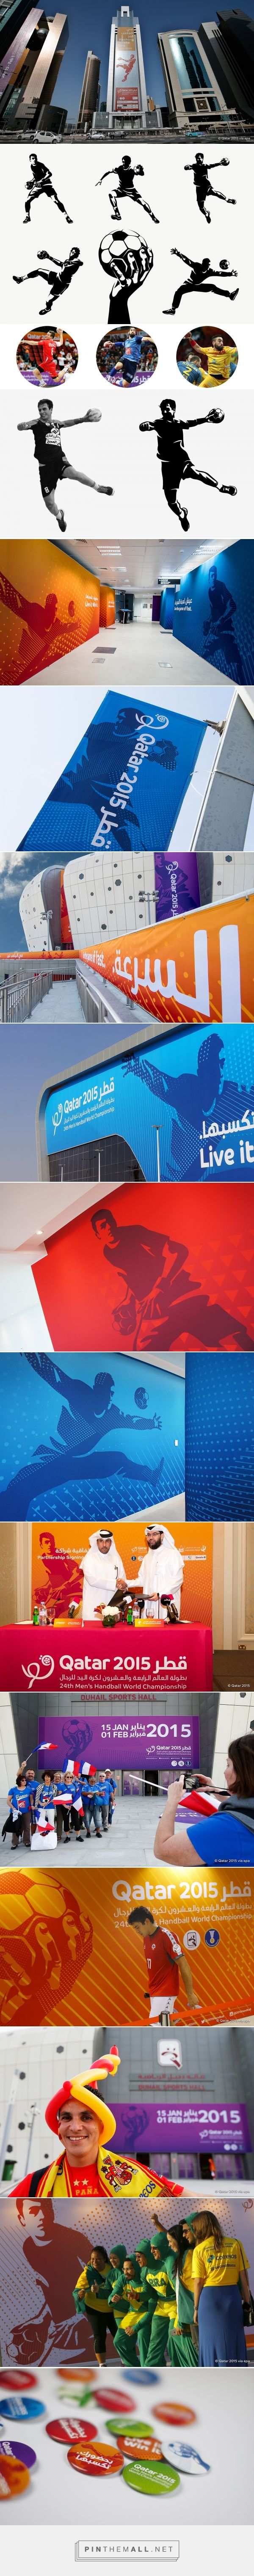 24th Men's Handball World Championship on Behance - created via https://pinthemall.net